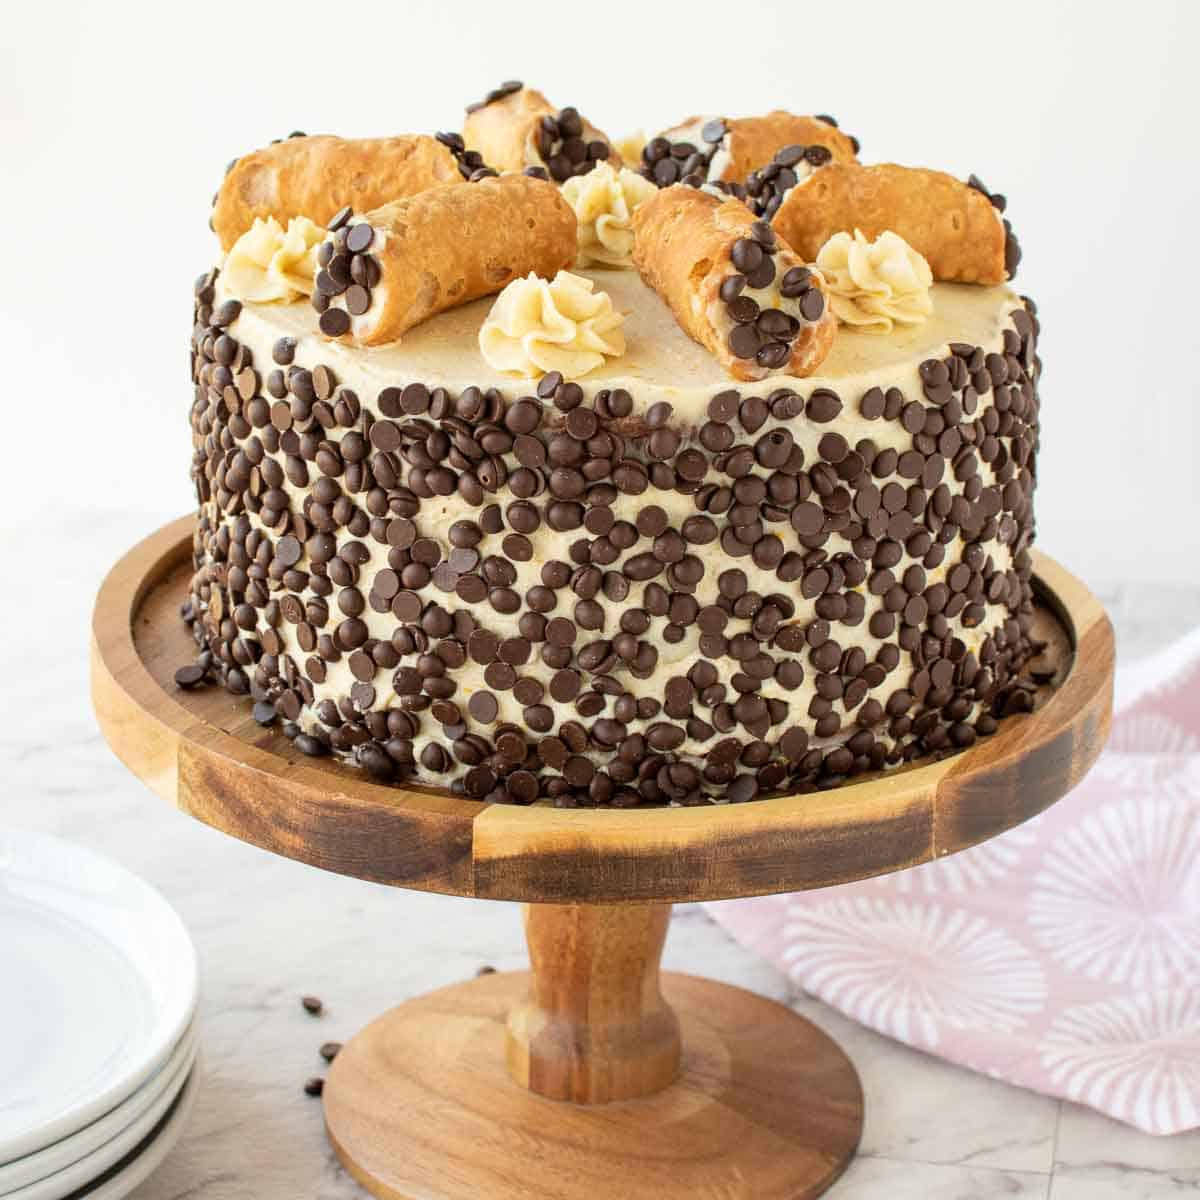 cake covered in mini choc chips with 6 cannoli on top. cake on on a wooden cake stand.